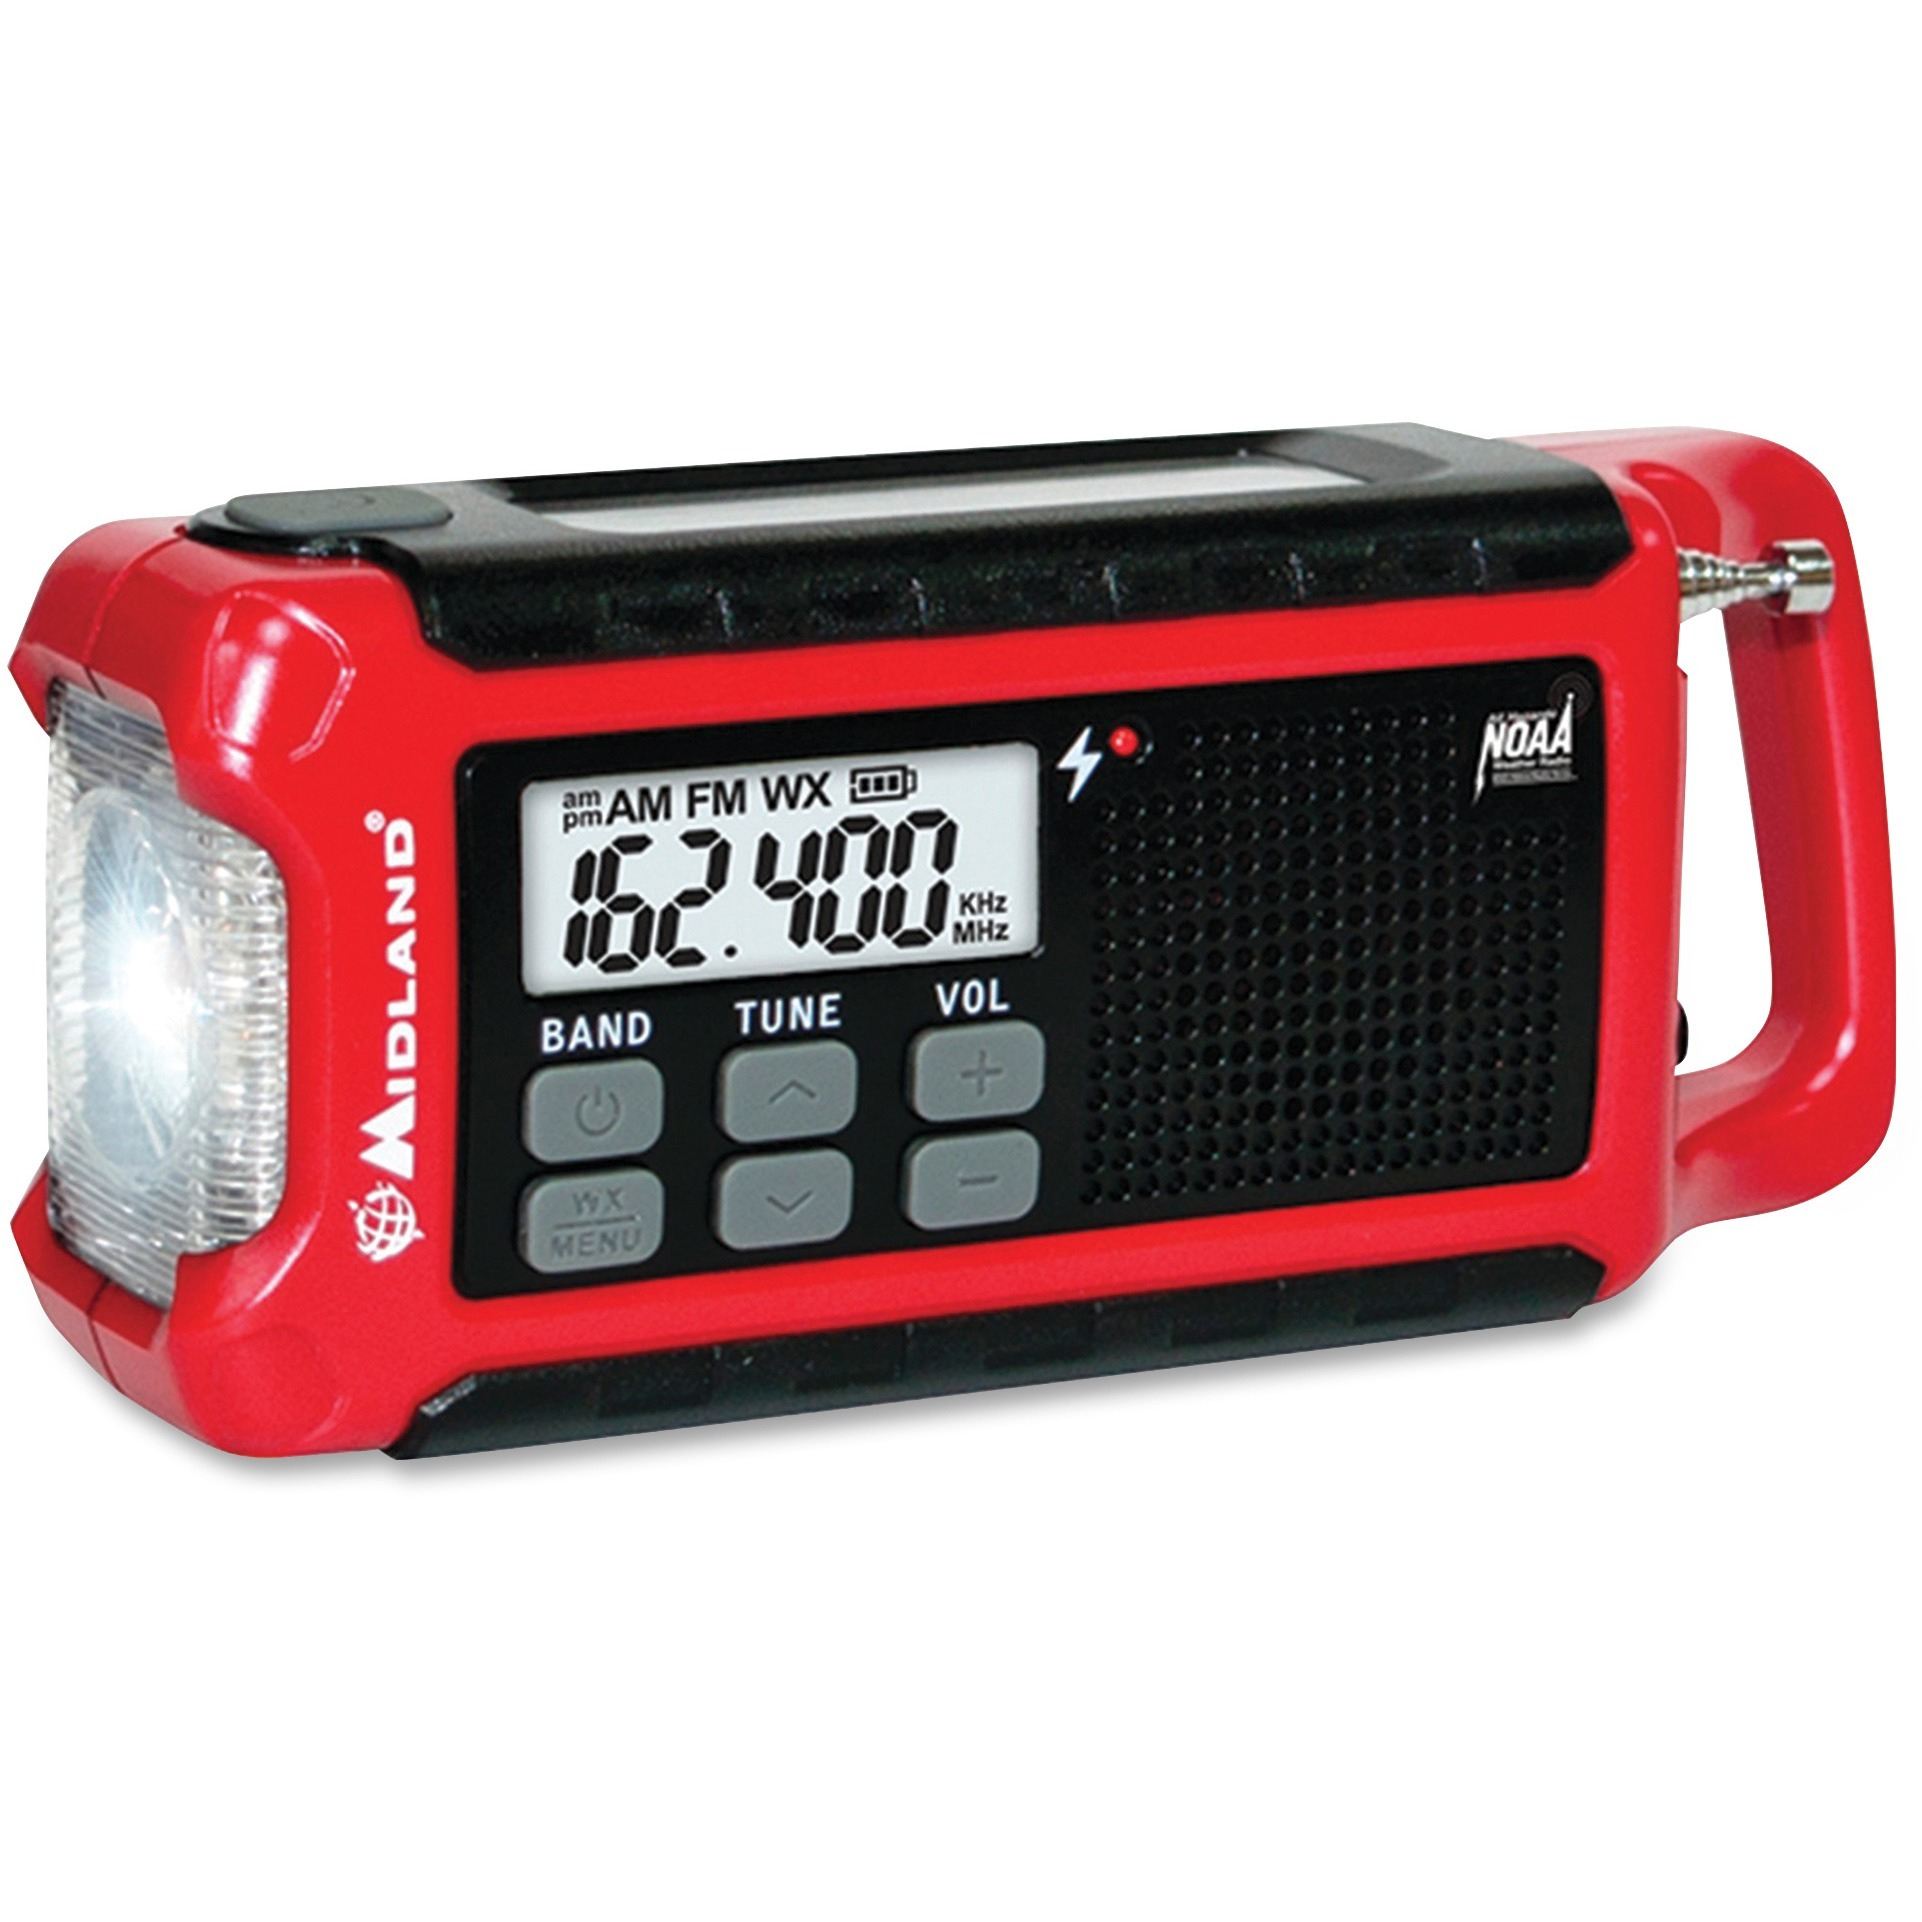 Midland, MROER210, ER210 E+Ready Compact Emergency Crank Weather Radio, 1